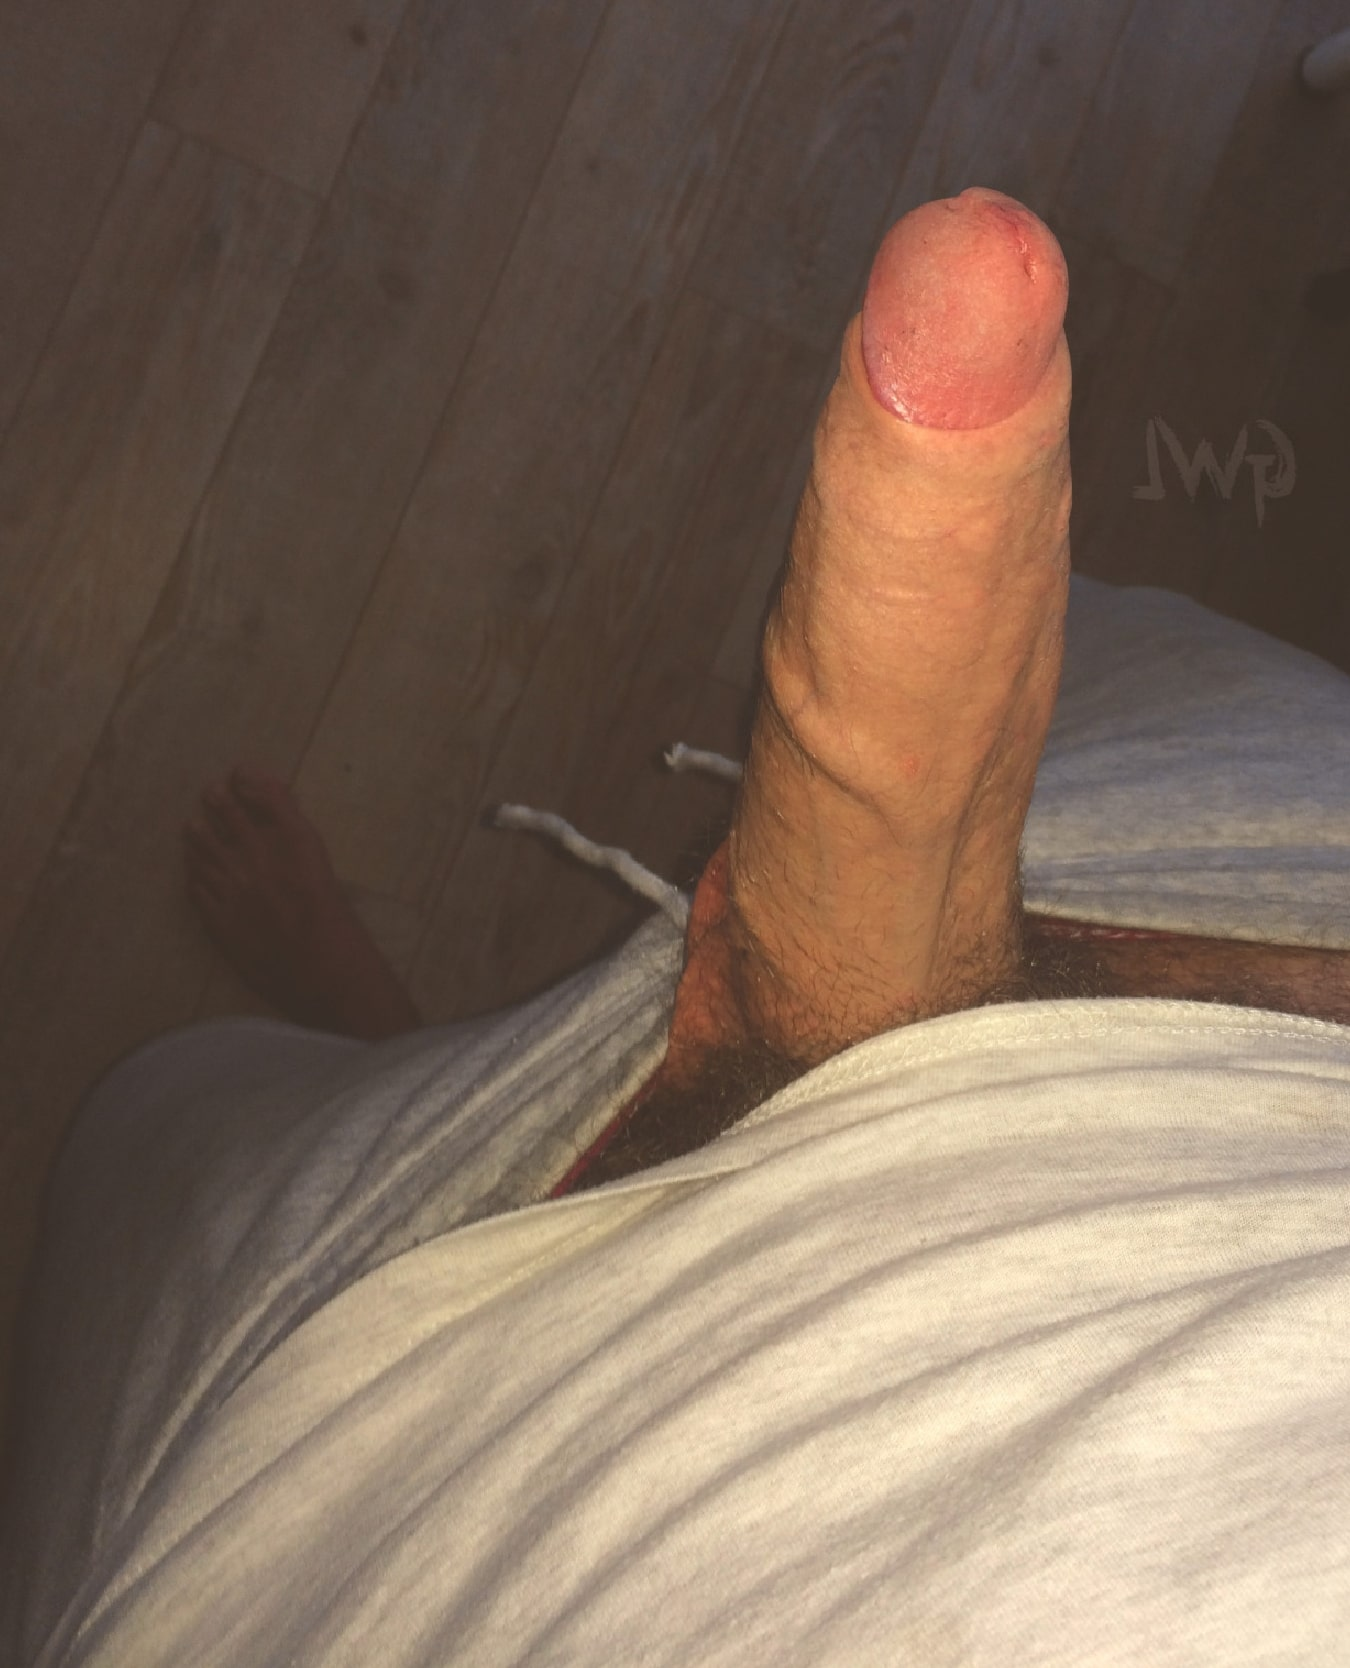 Big uncut cock images gallery